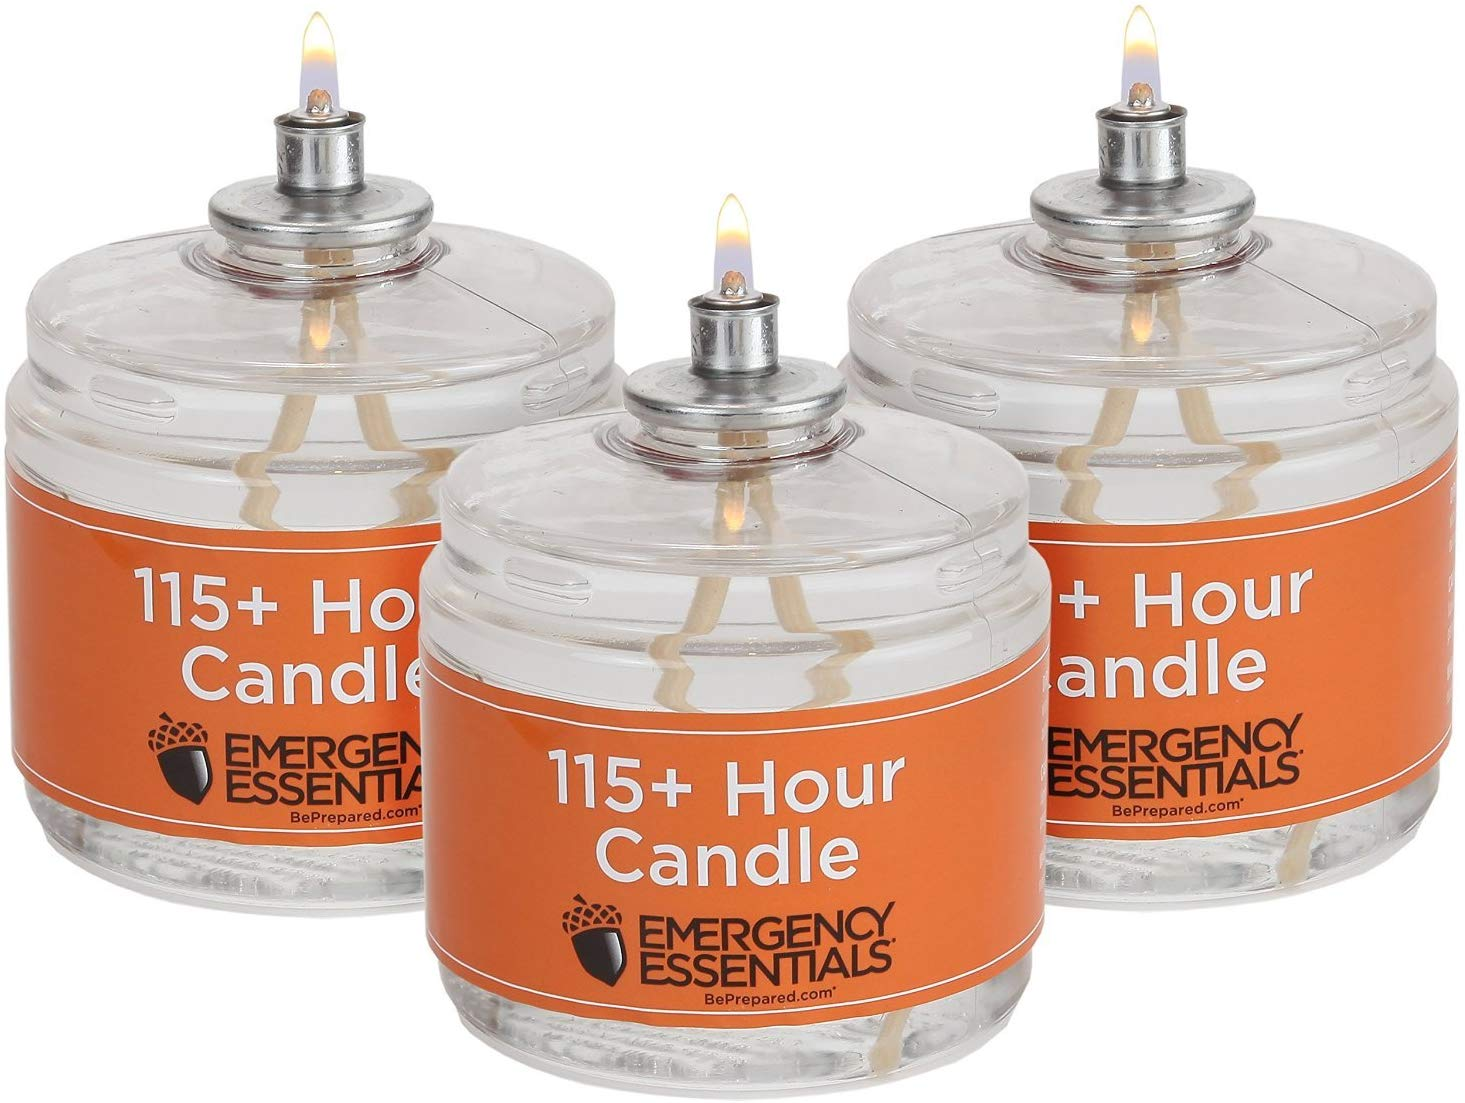 Sterno Emergency Candles